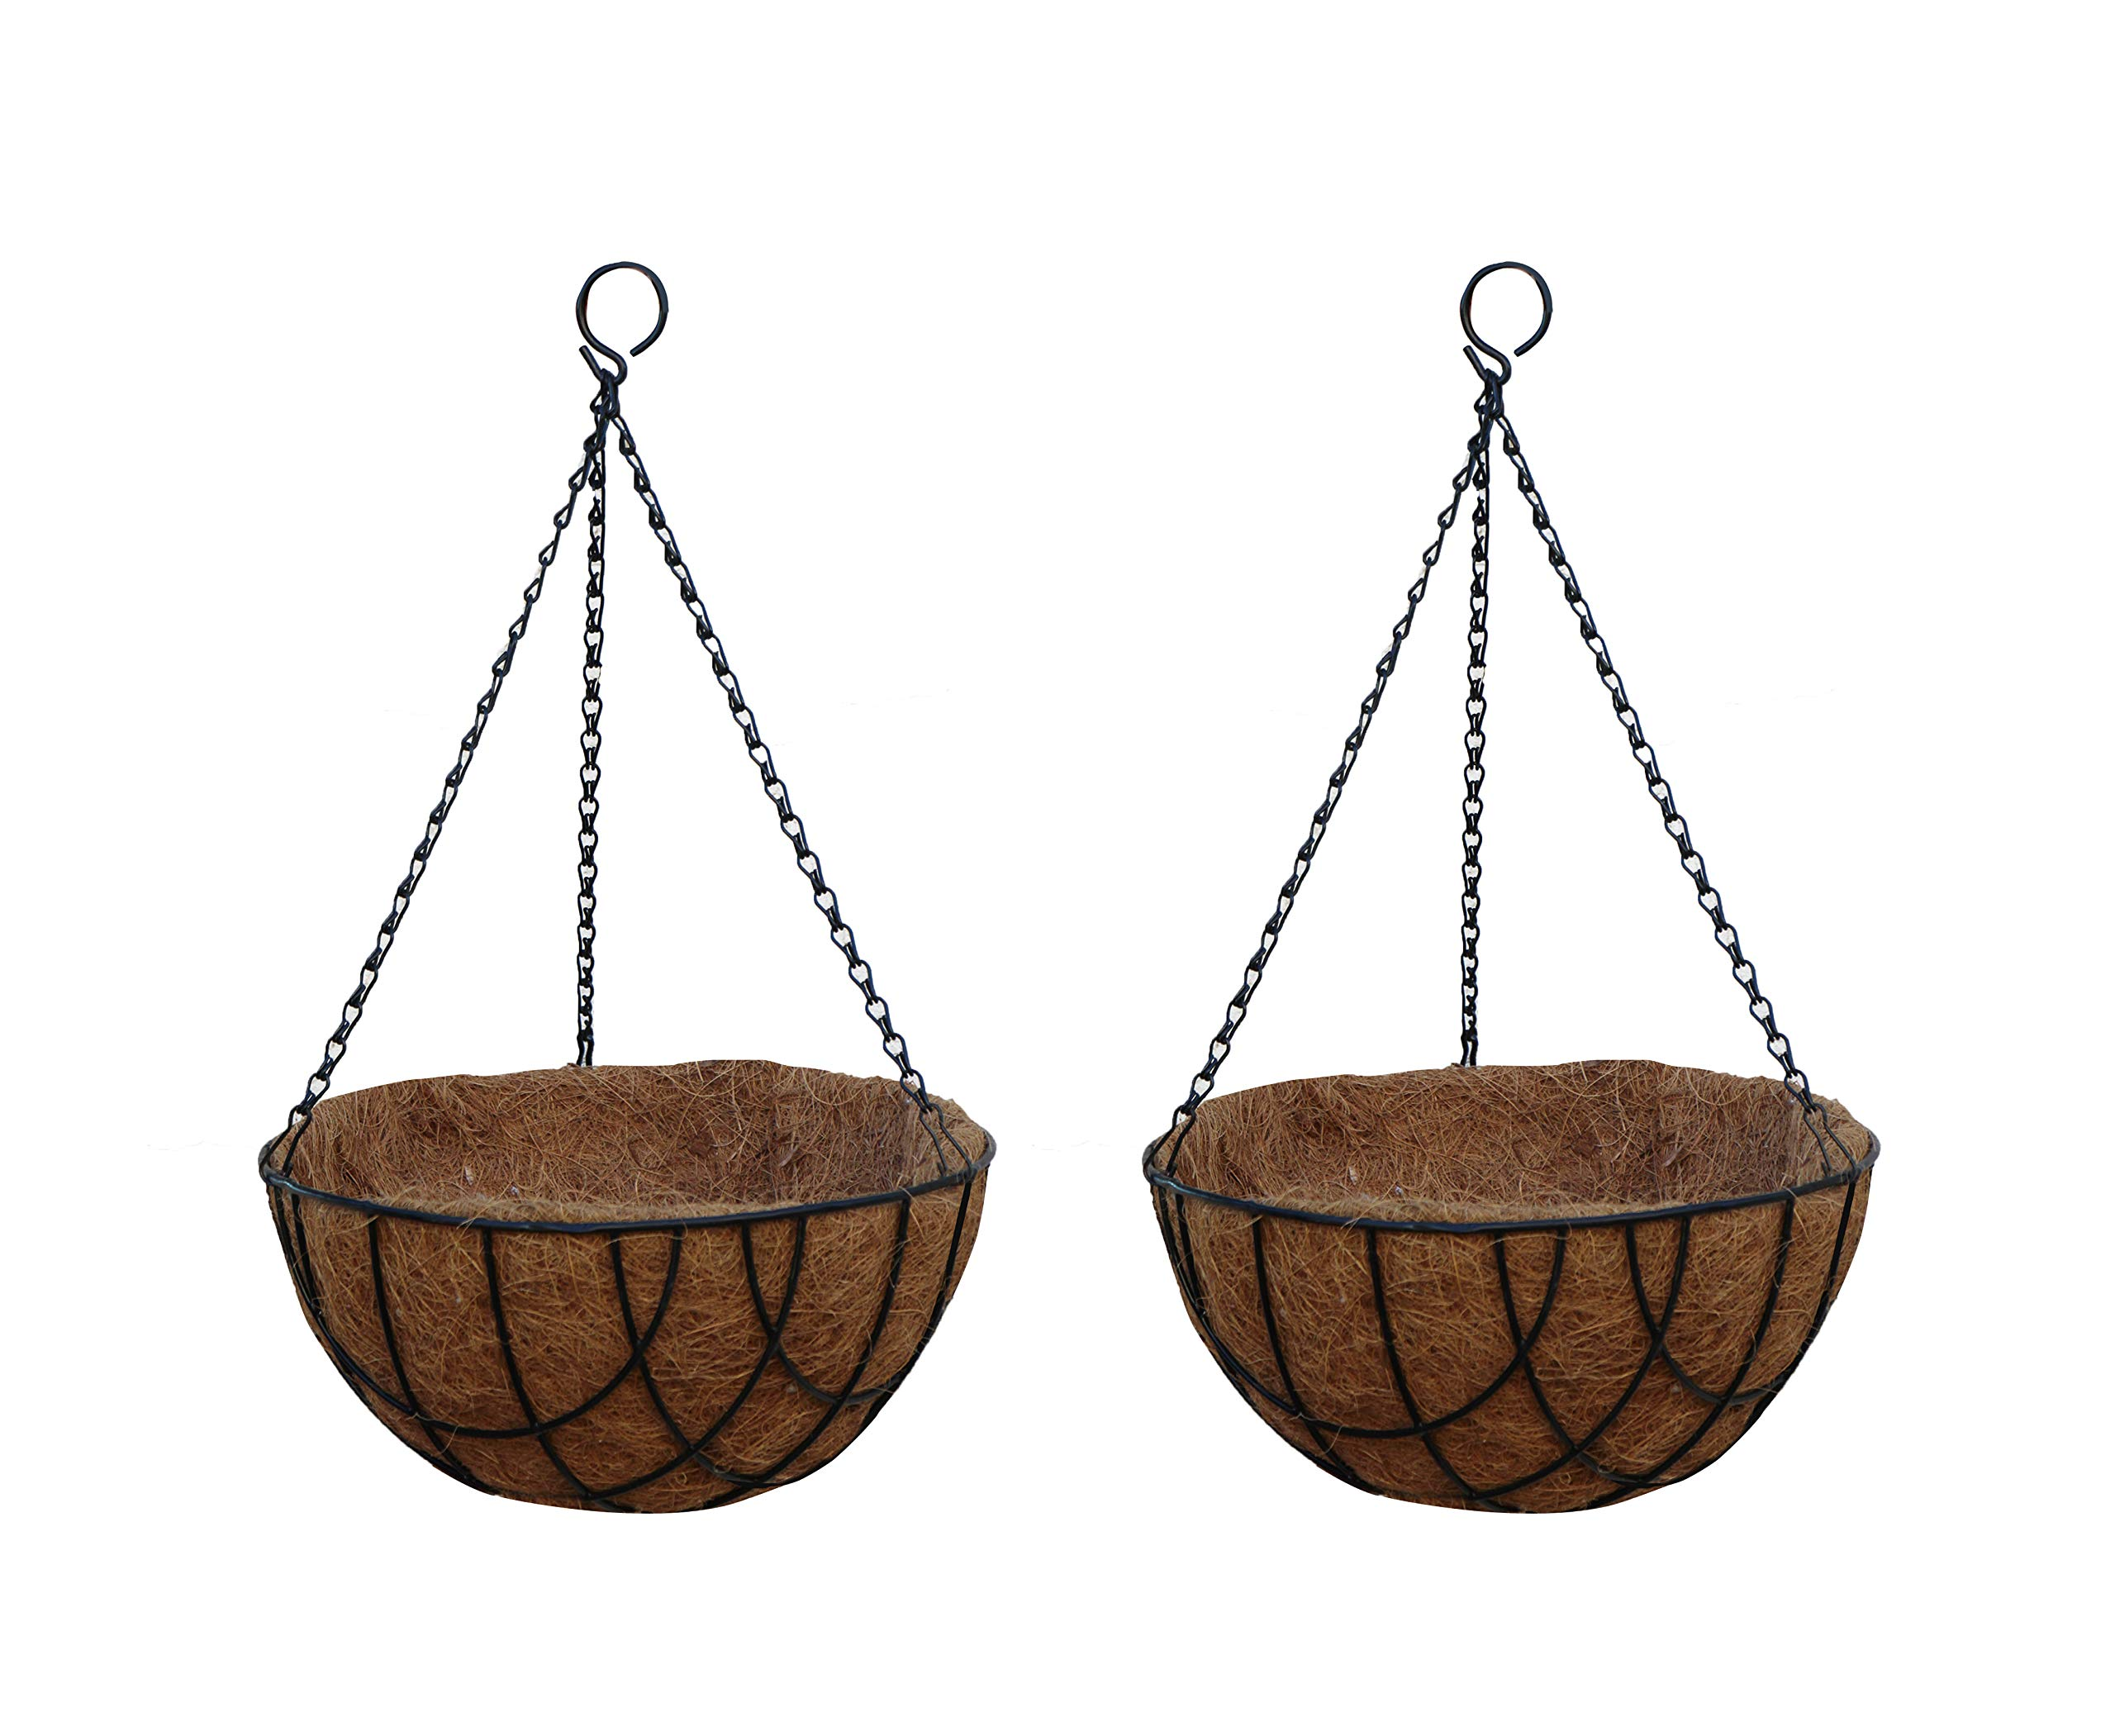 TABOR TOOLS MT2100A 2-Pack Metal Hanging Planter Basket with Natural Coconut Coir Liner, Chain and Hook Included (Wire 10'', Black)